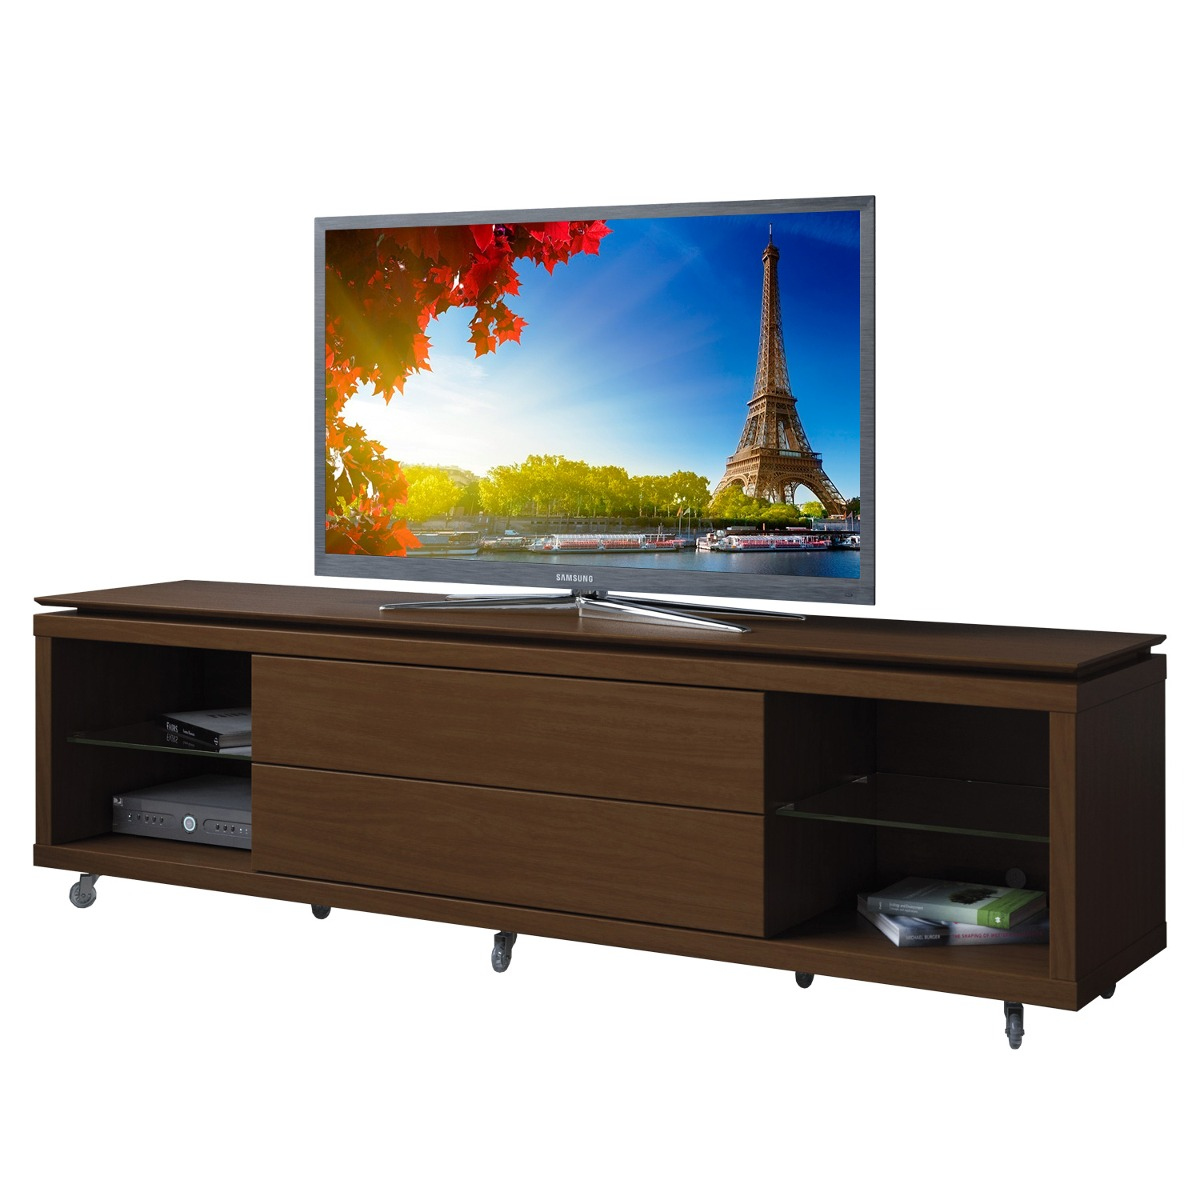 Mesa Rack Mueble Tv Led Hasta 60 2 4 Lincoln Provincia 10 399  # Fabrica De Muebles Vedia